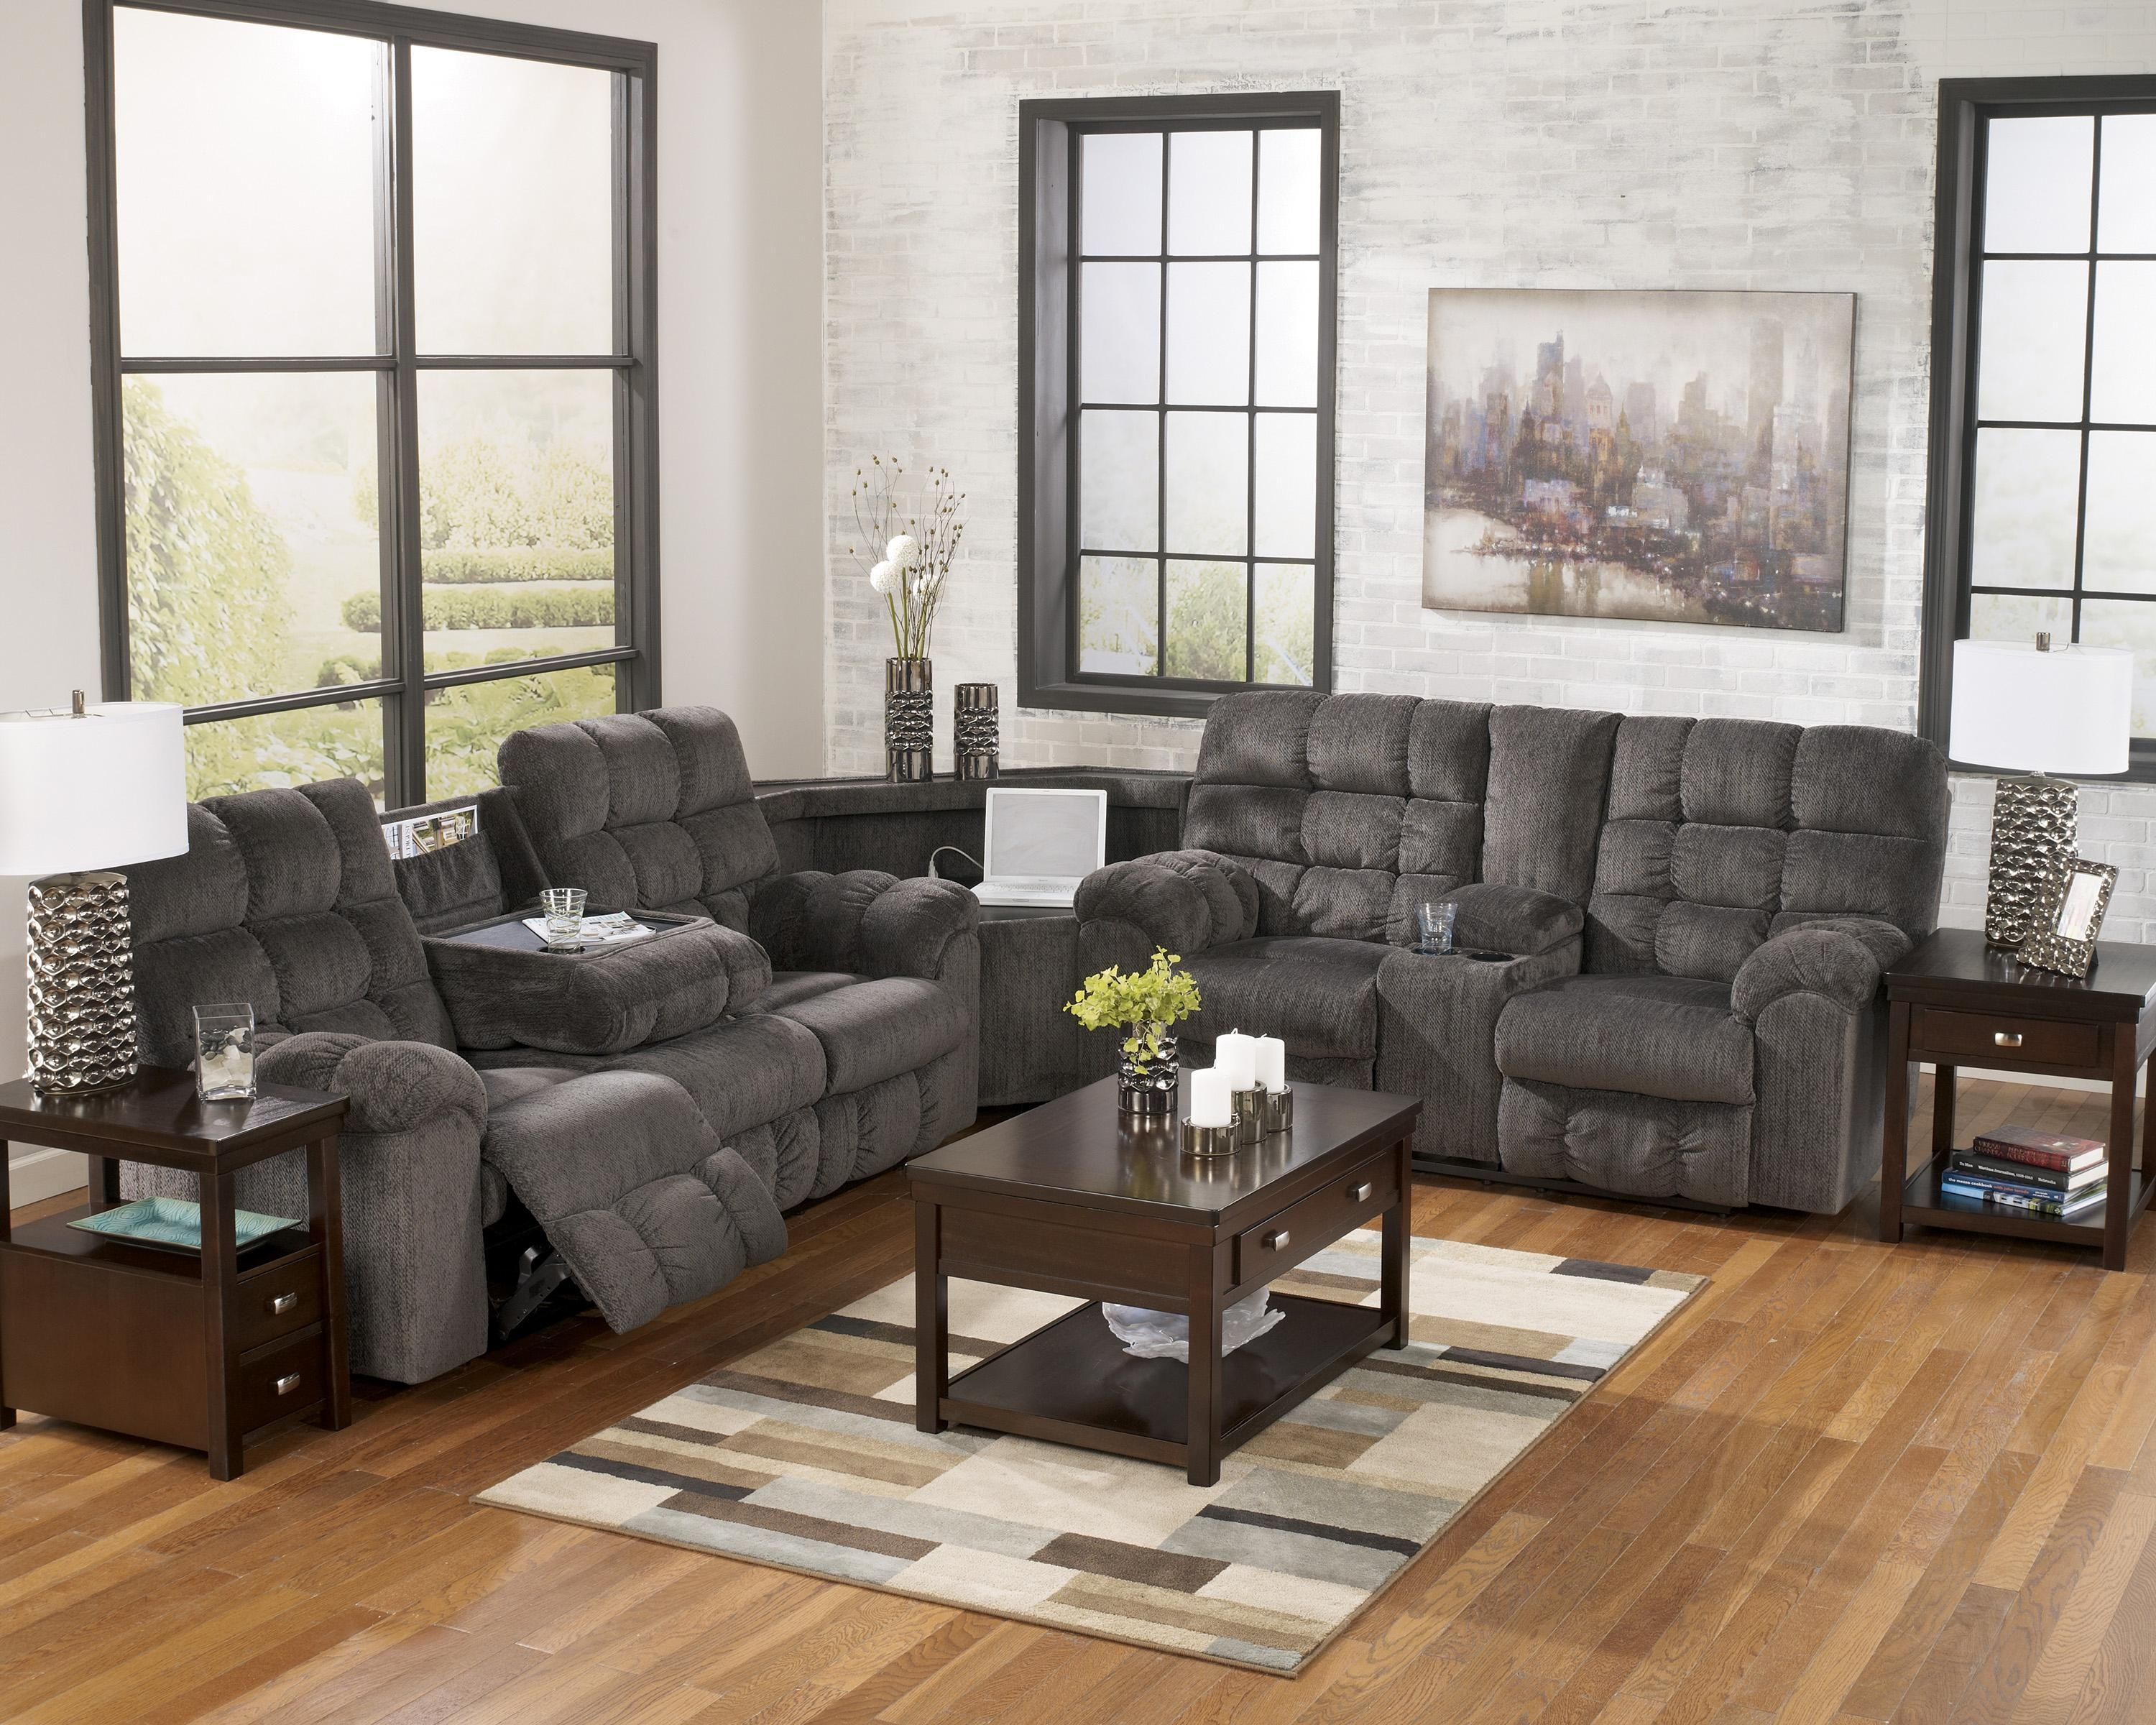 Reclining Sectional Sofa With Right Side Loveseat, Cup Holders And Pertaining To Sectional With Cup Holders (Image 9 of 20)